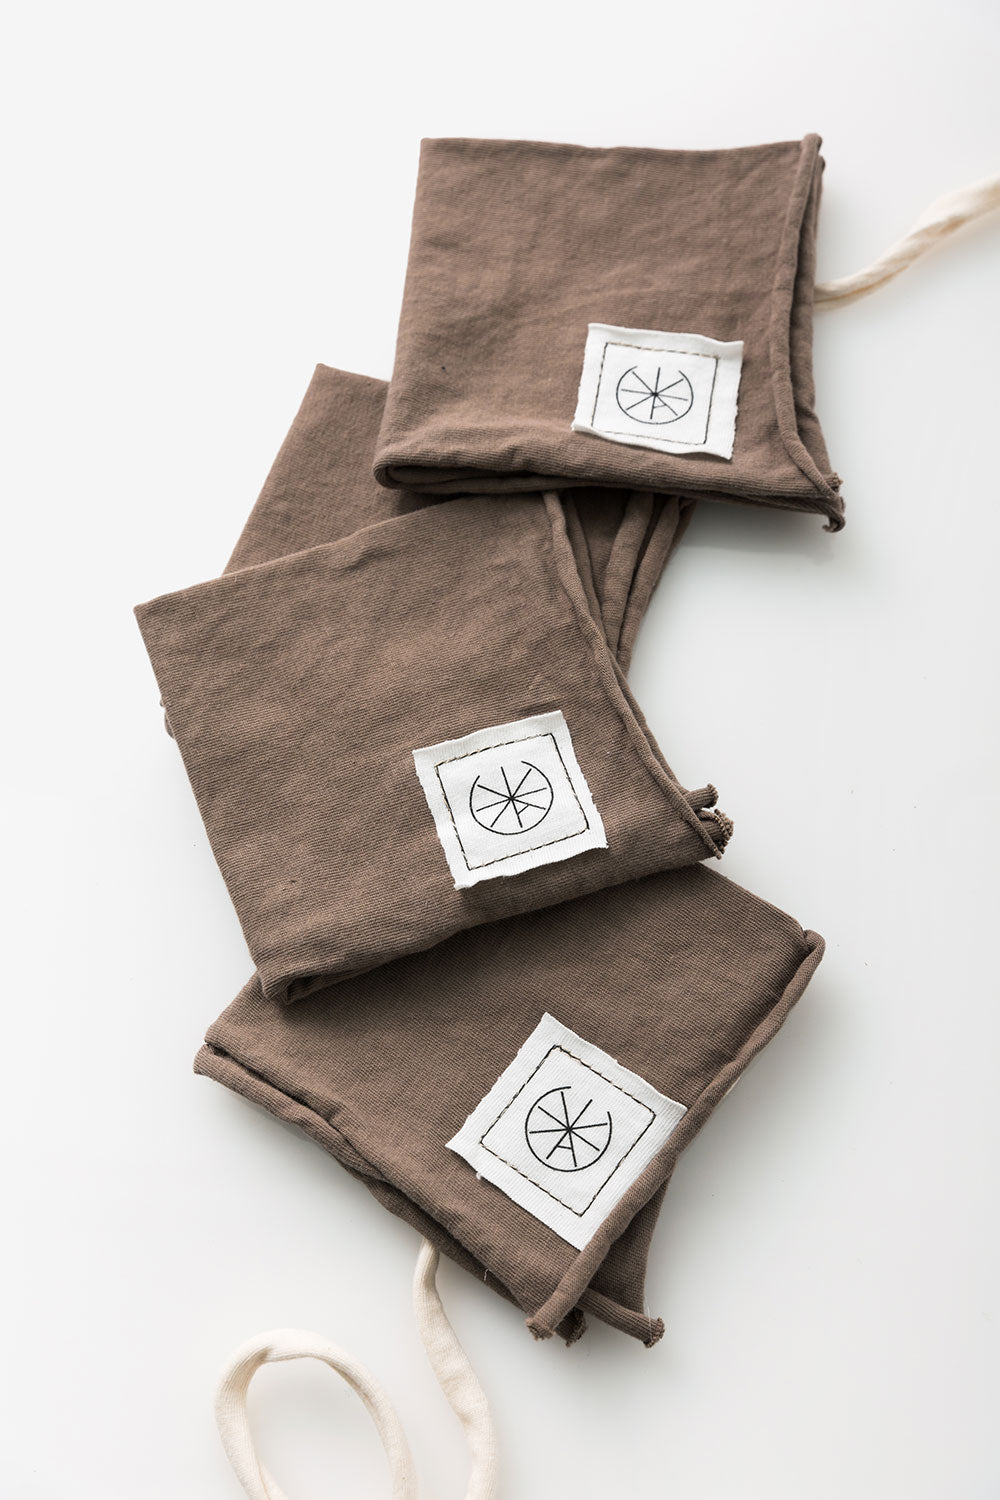 Alabama Chanin Cocktail Napkins Organic Cotton Jersey Napkins in Brown